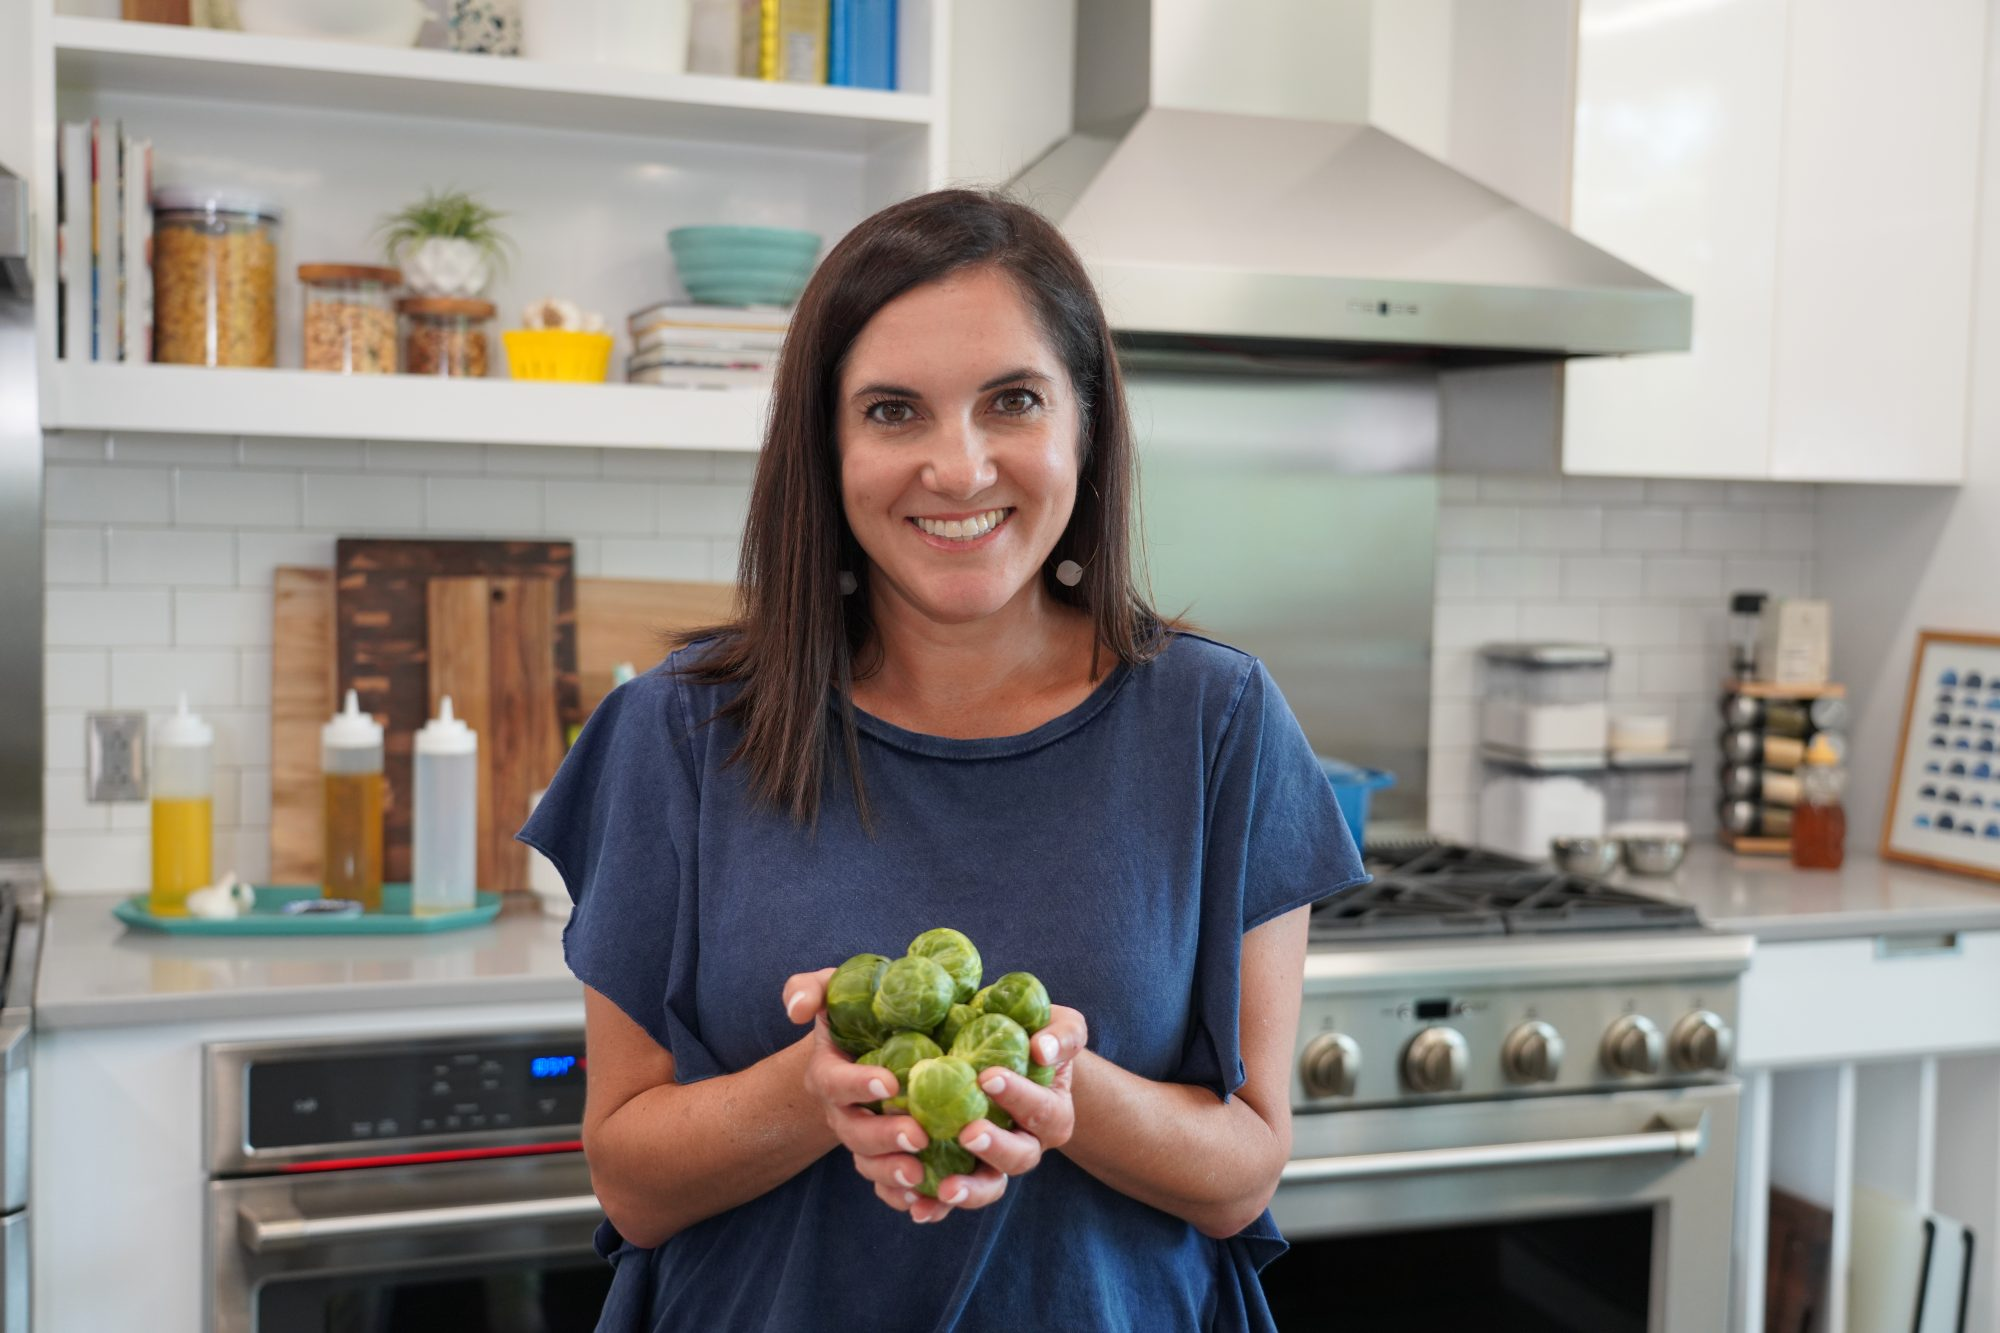 Nicole McLaughlin holding Brussels Sprouts in kitchen